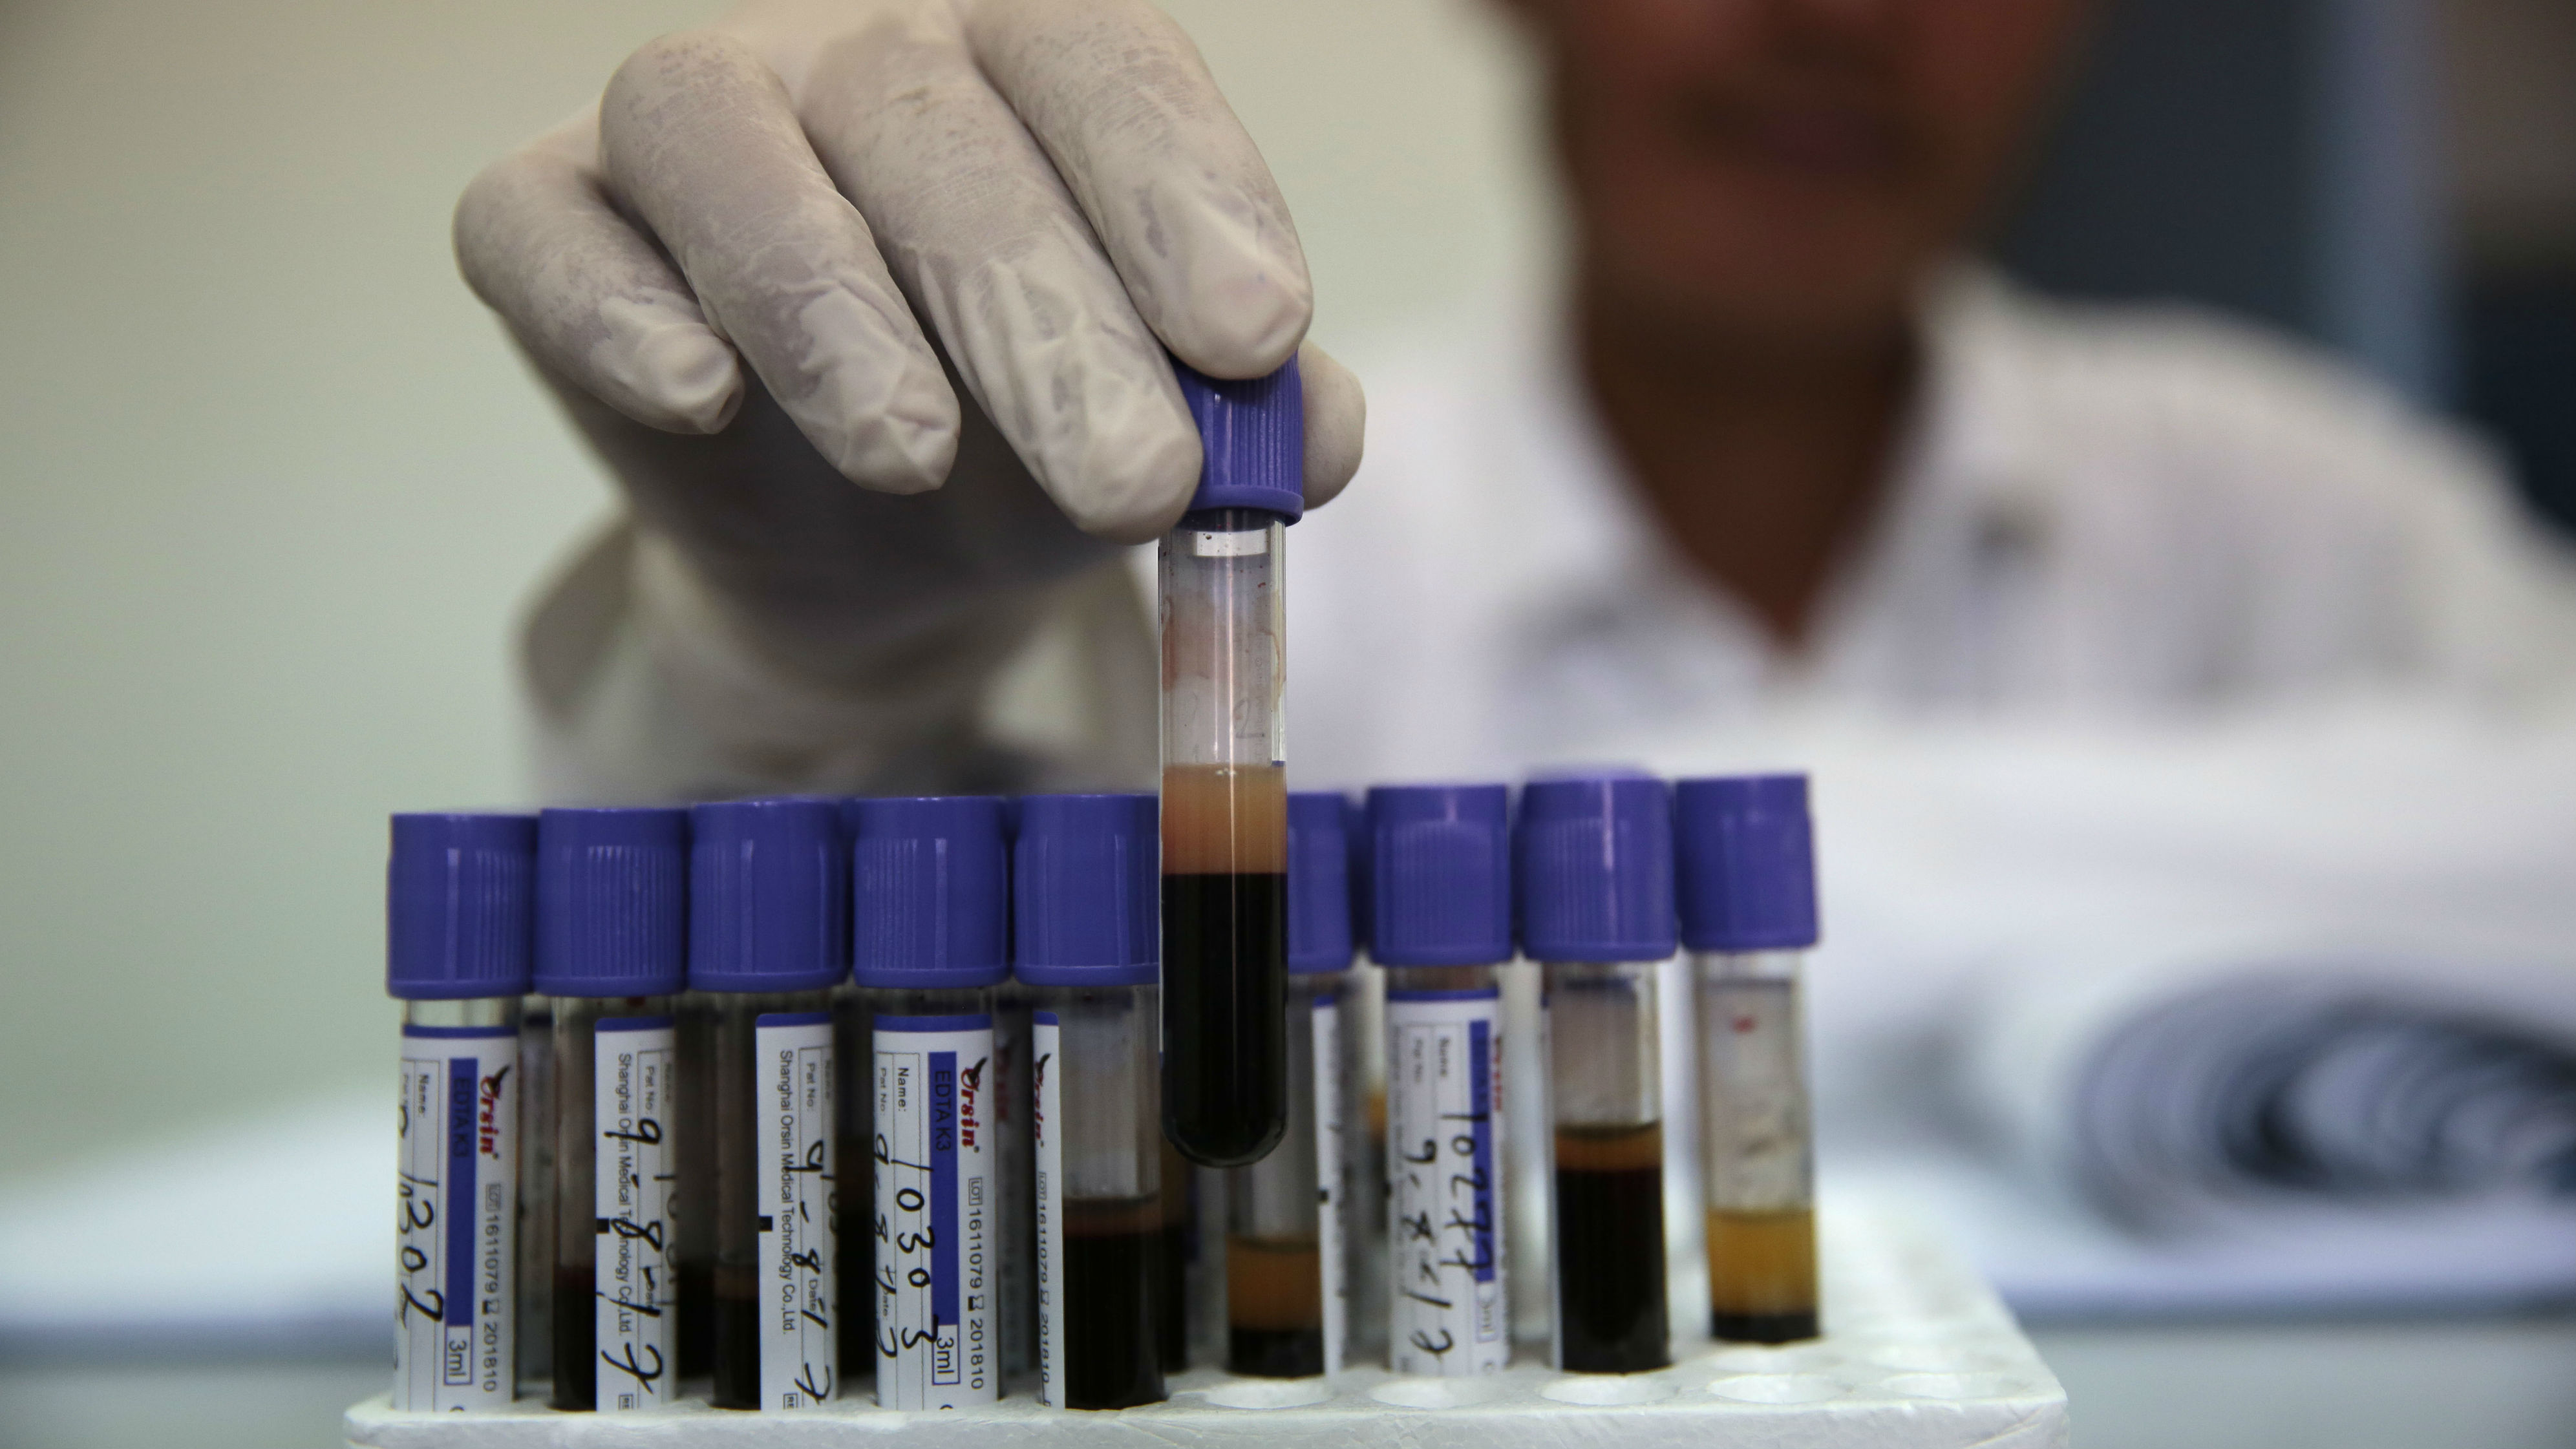 Is There A Test For Alzheimers >> Alzheimer S Test Diagnosing The Disease May Soon Become Much Easier